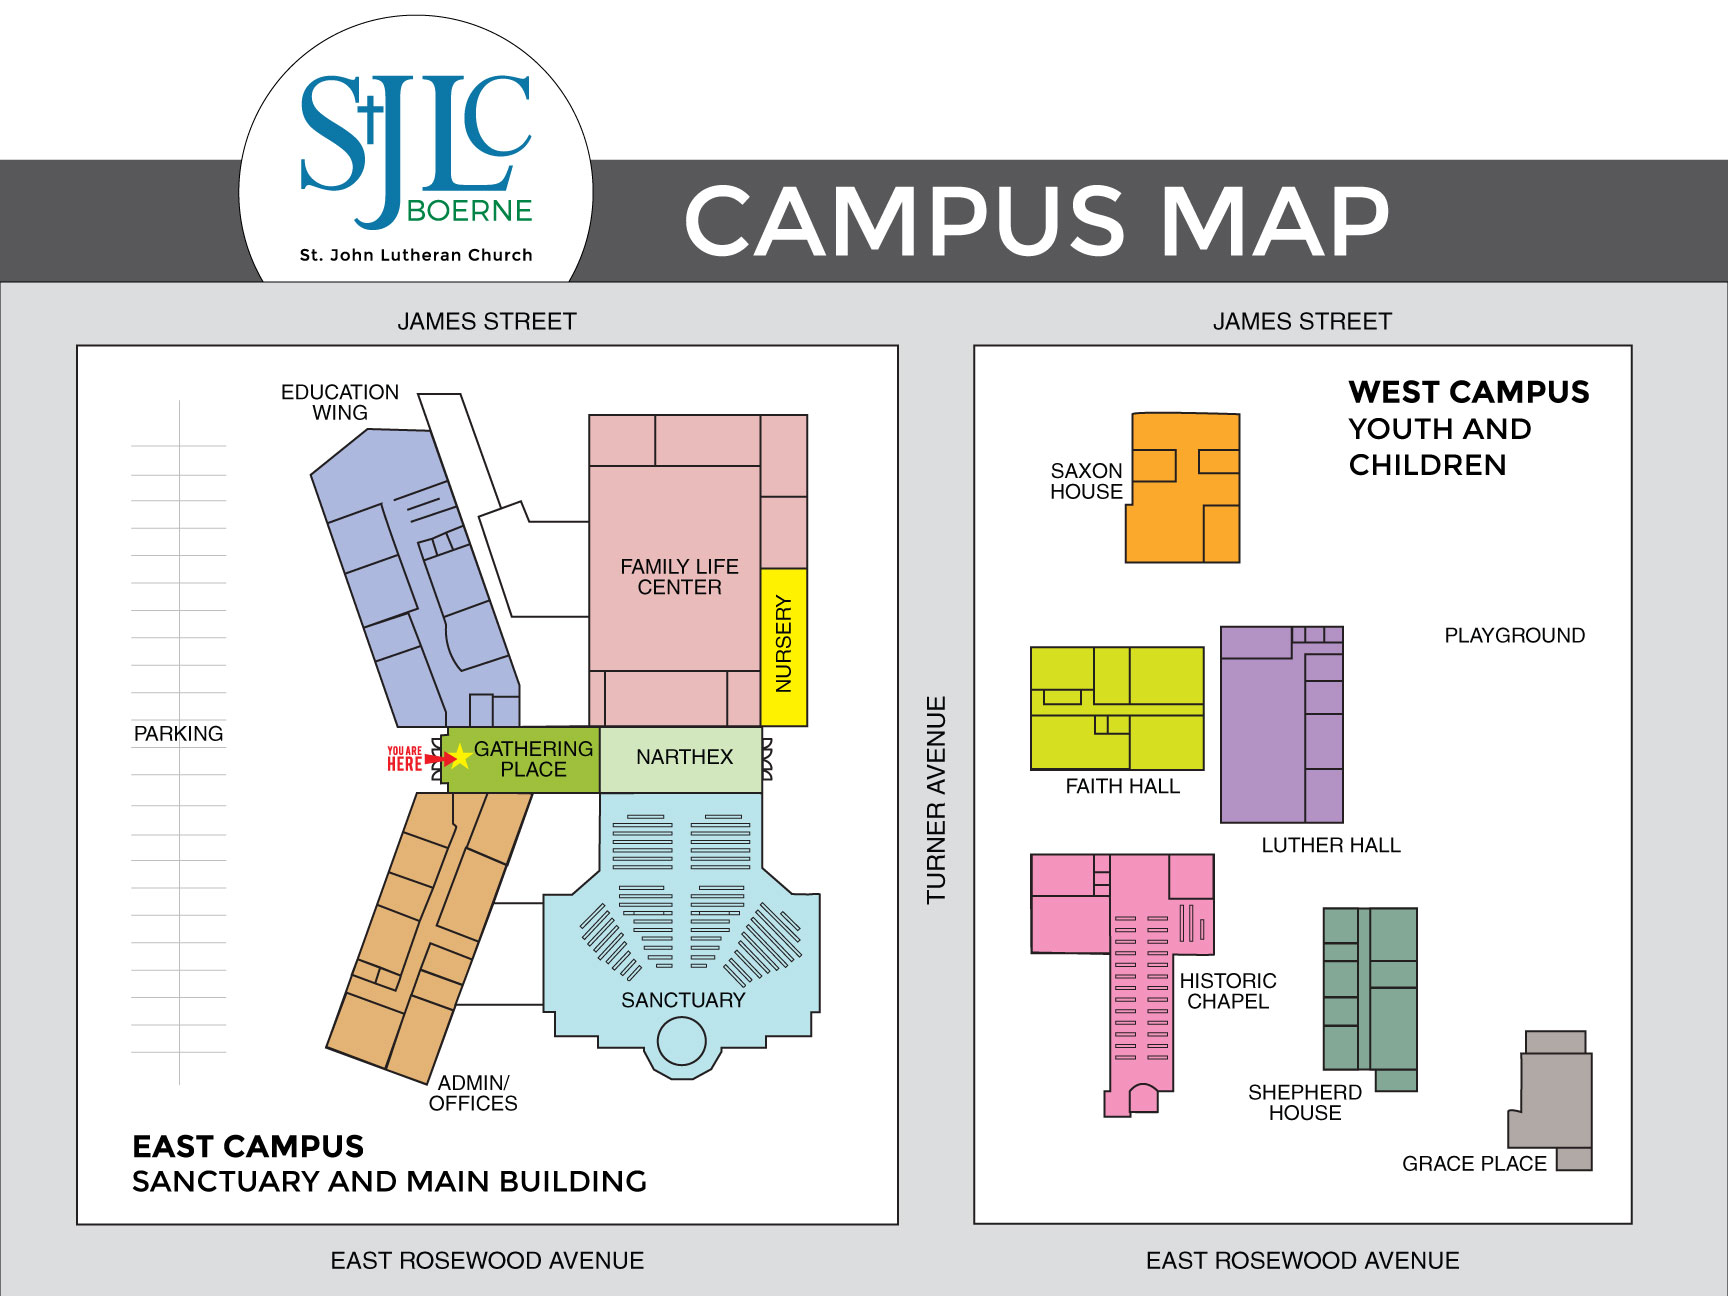 St. John Lutheran Campus Map